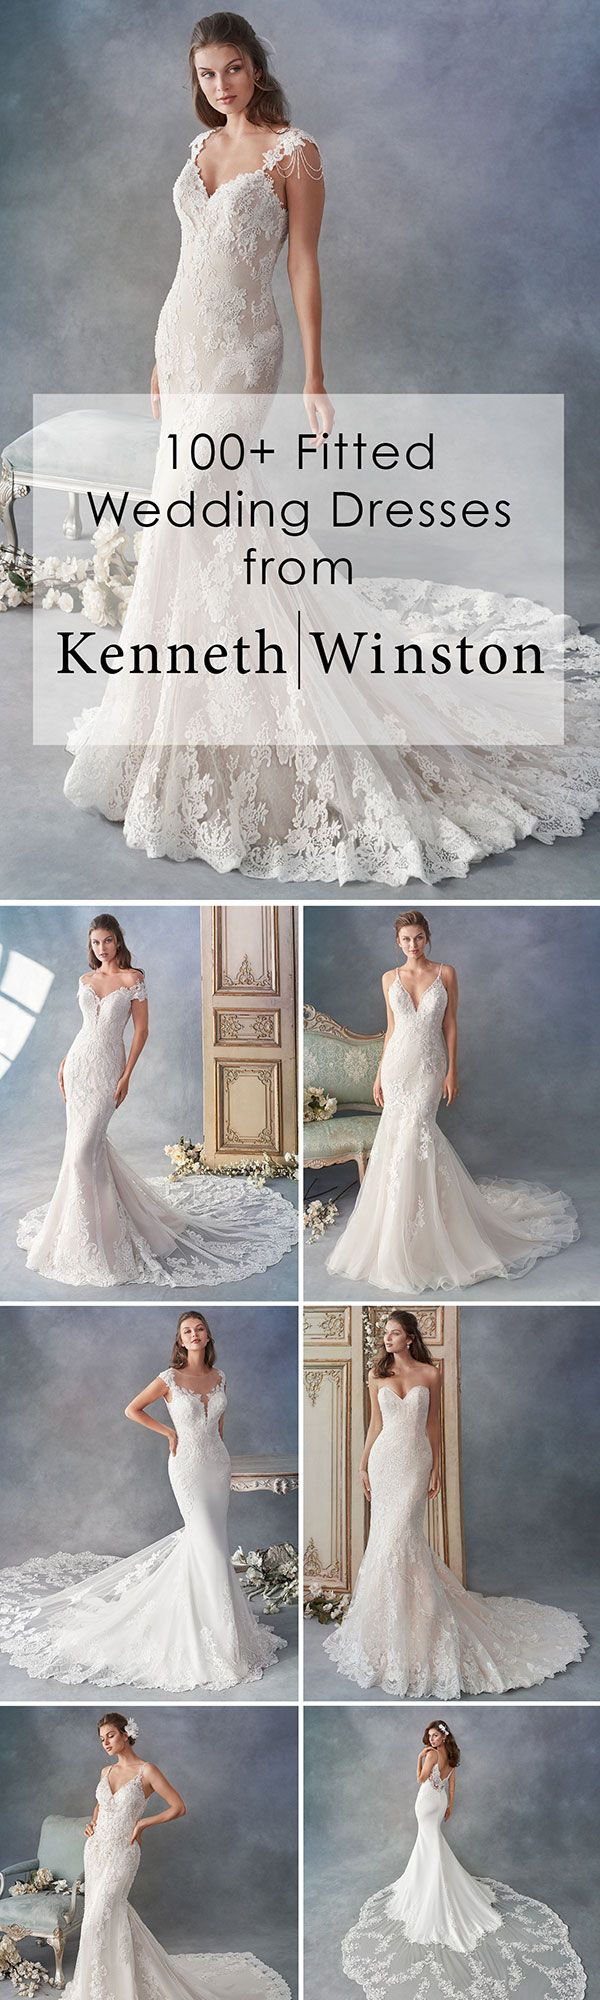 100 Fitted Wedding Dress Designs From Kenneth Winston Wedding Dresses Lace Wedding Dresses Designer Wedding Dresses